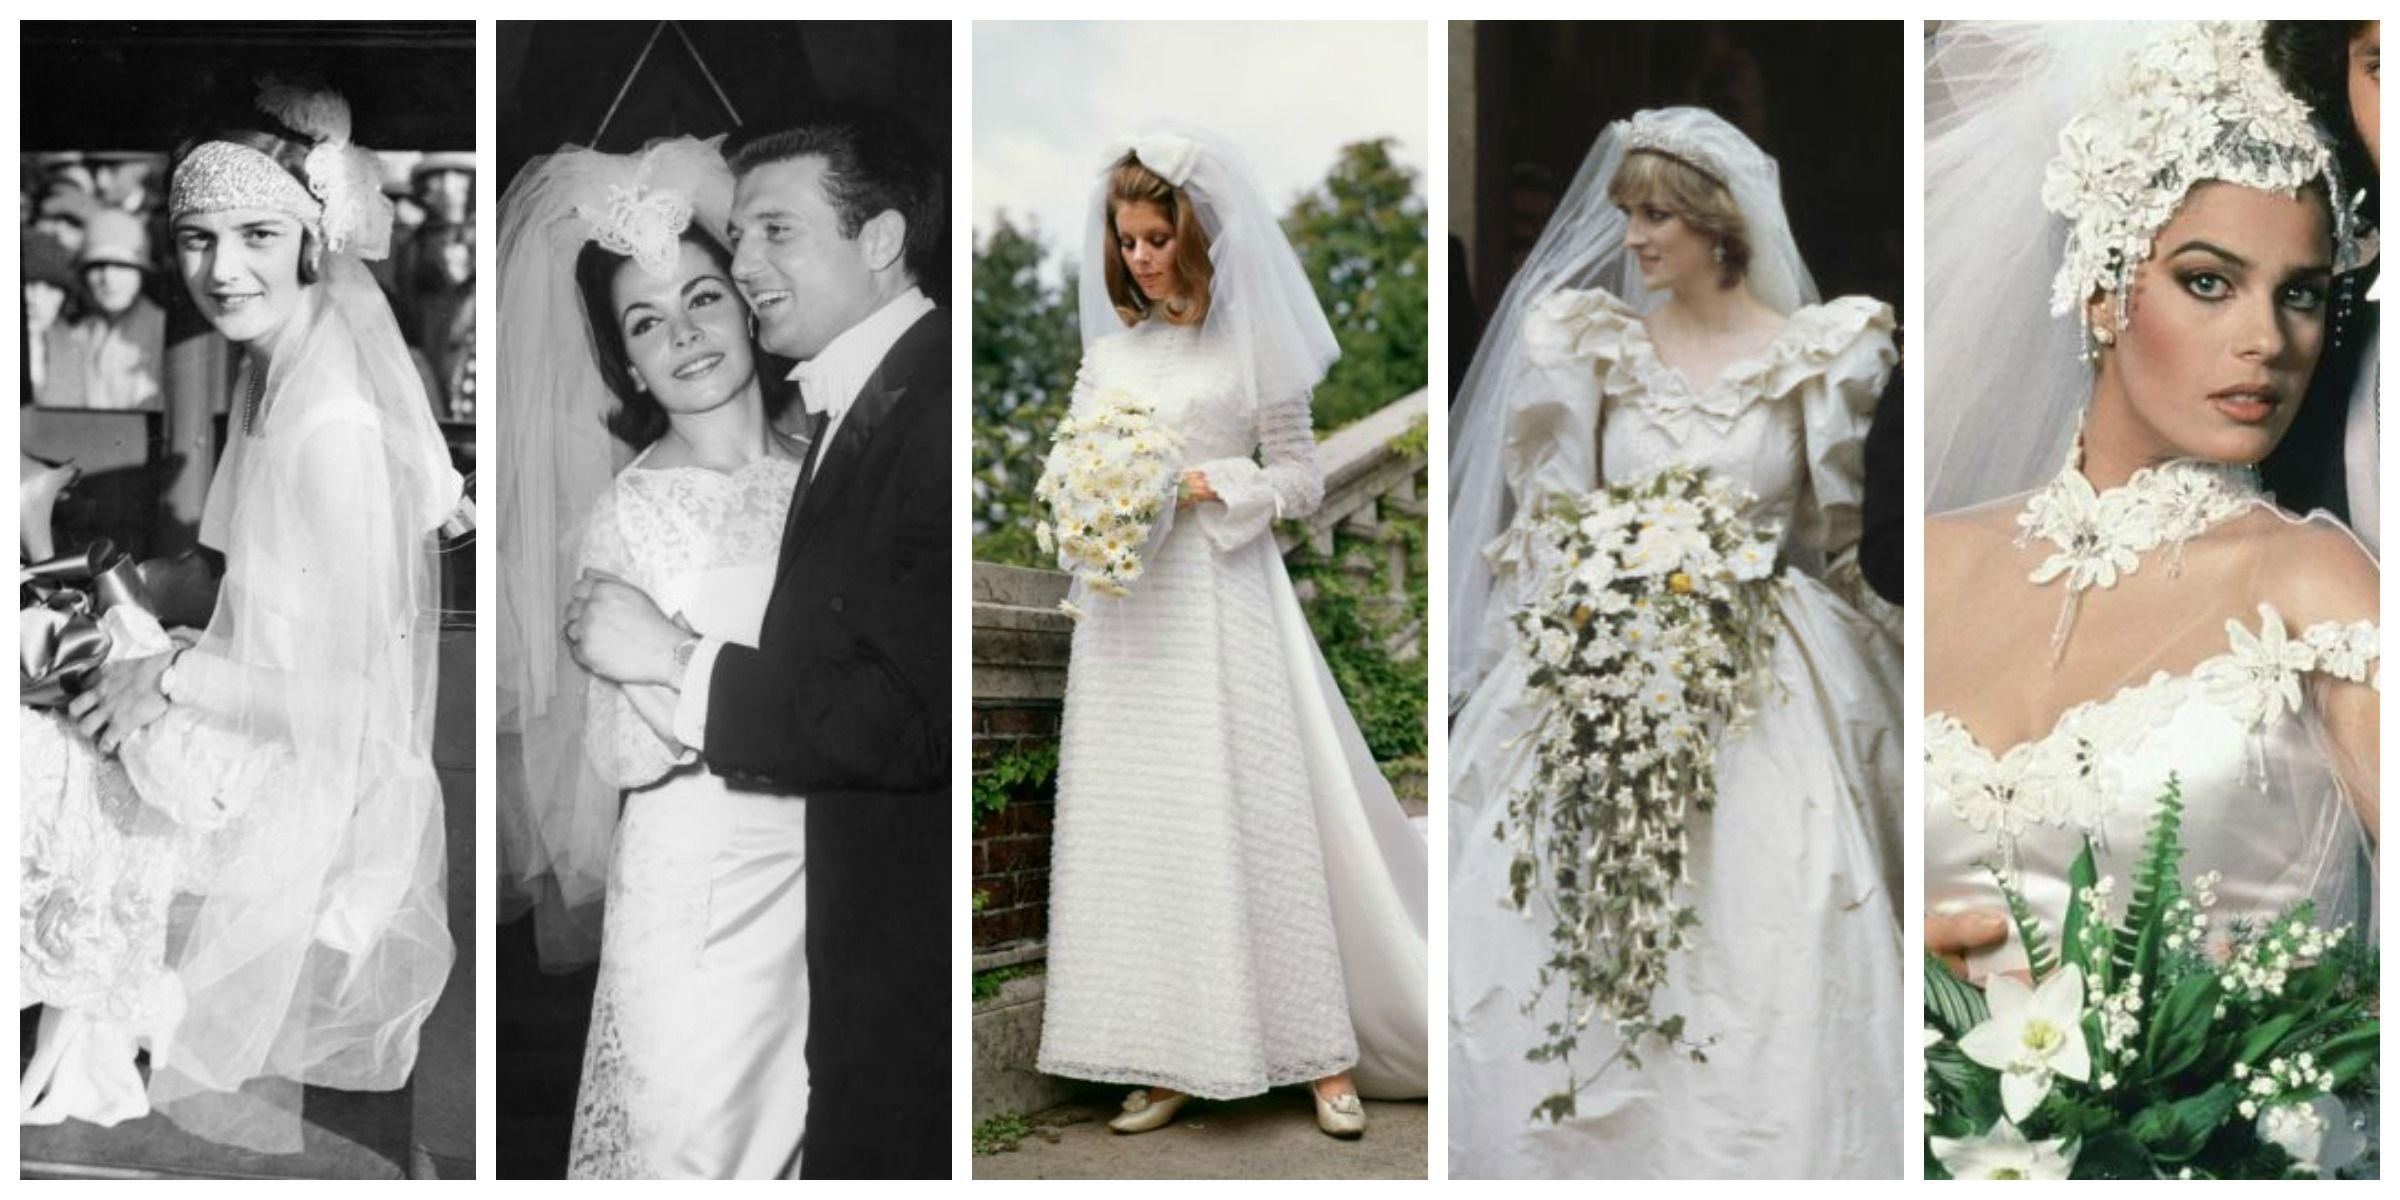 The Complete History Of Weddings Wedding History And Trivia Questions Over Past 100 Years